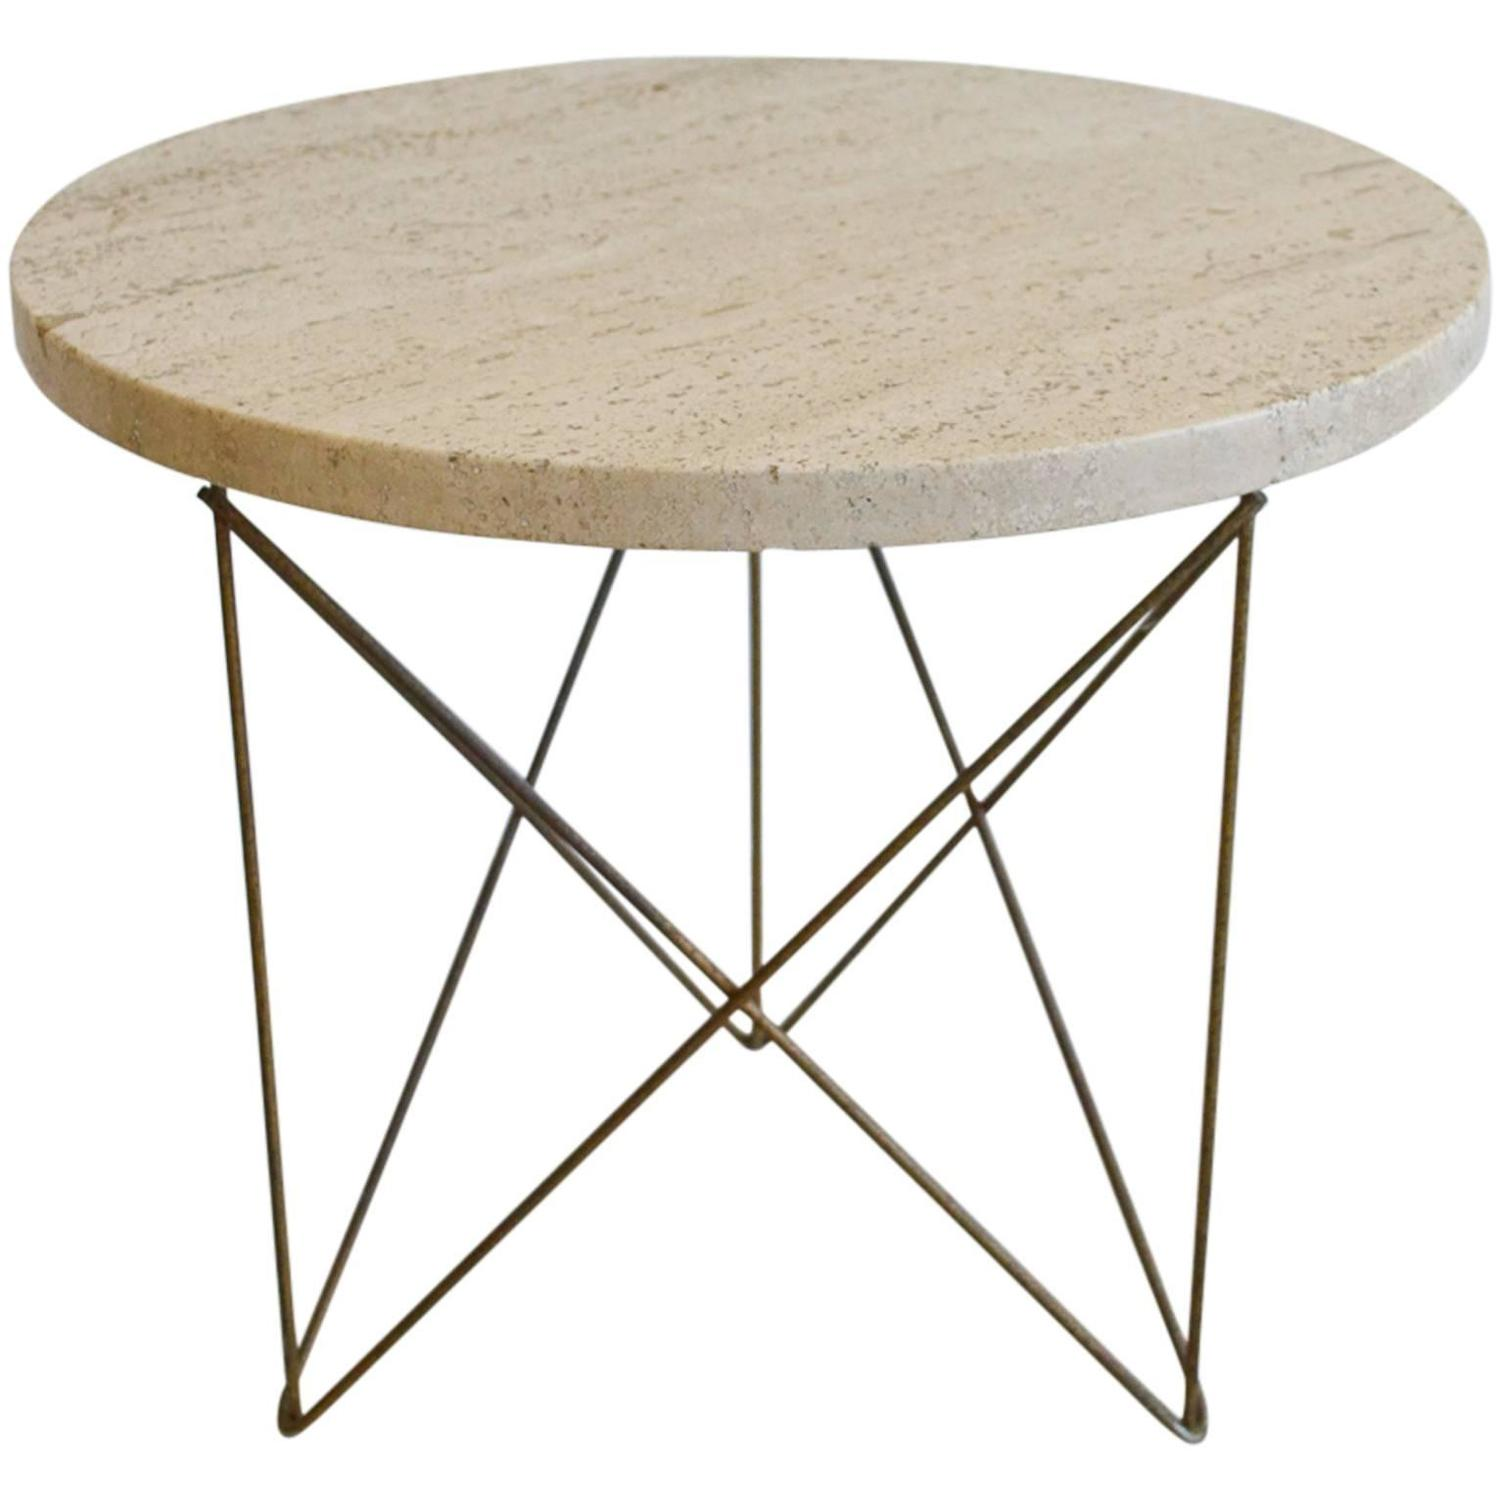 Rene Brancusi Travertine And Brass Wire End Table At 1stdibs